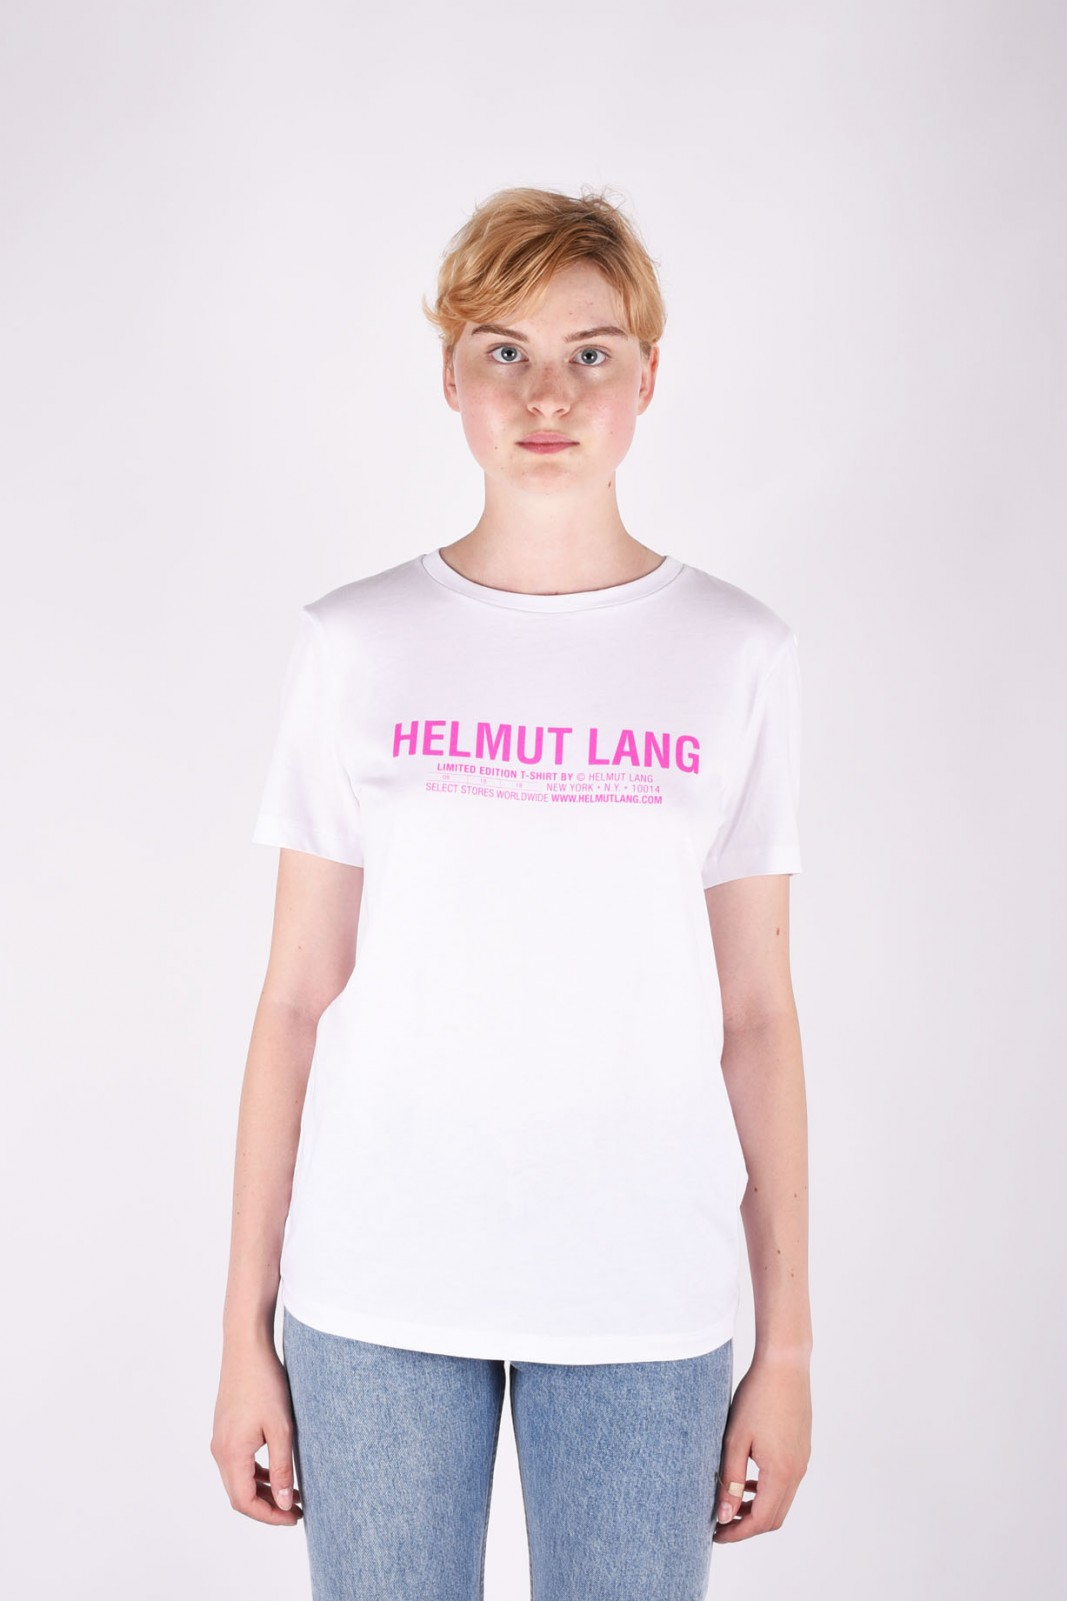 HELMUT LANG Limited Edition cotton T-shirt